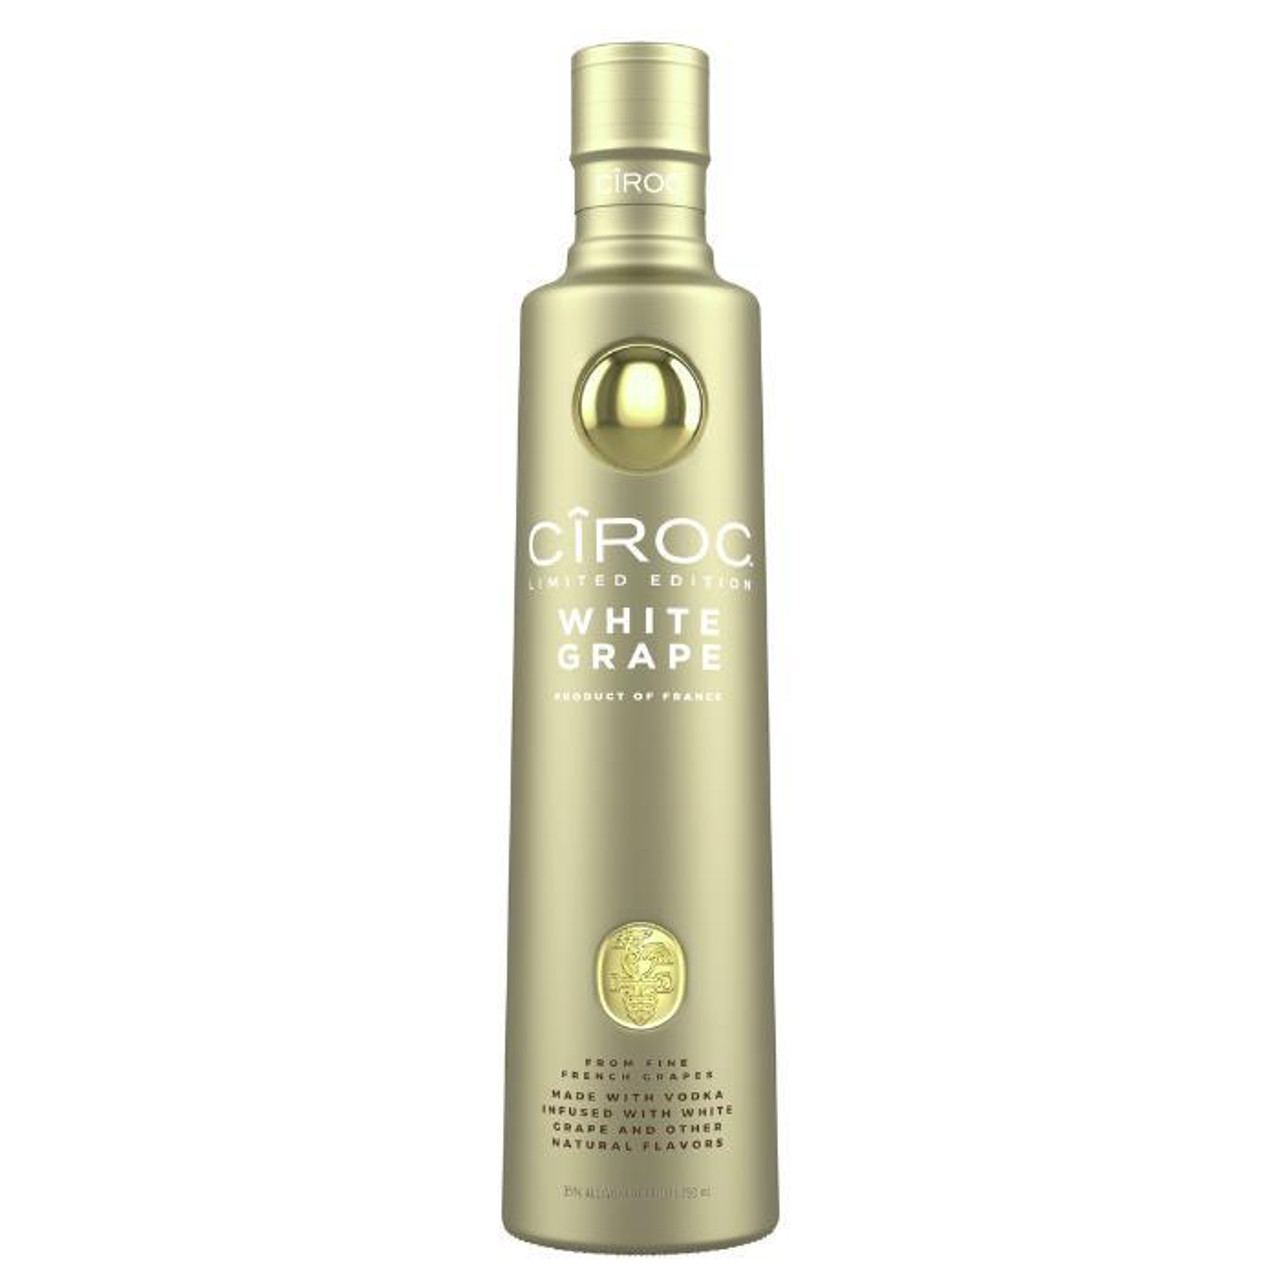 Ciroc White Grape is a rich tasting spirit made with vodka five times distilled from fine French grapes, finished in a tailor-made copper pot still in Southern France. This vodka is masterfully infused with a distinctive blend of white grape and other natural flavors, resulting in a taste experience that is lusciously different and elegantly smooth.